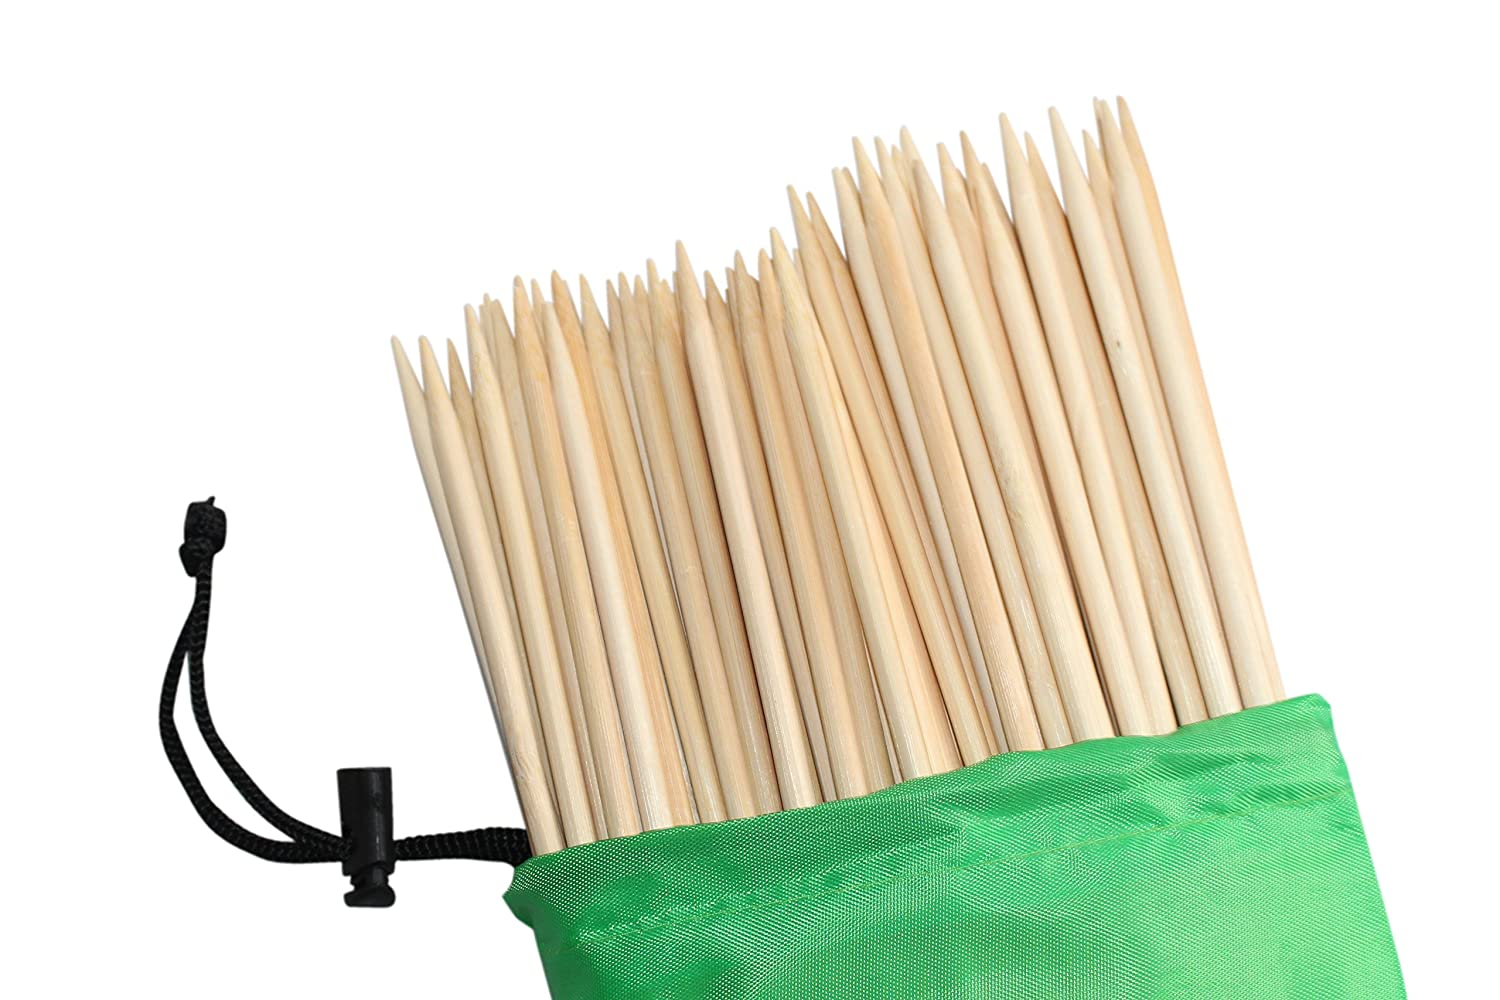 Cuisinelogic Bamboo Marshmallow S'Mores Roasting Sticks 36 inch 5mm 110 Premium Heavy Duty Skewers with Fabric Storage Bag-All Natural